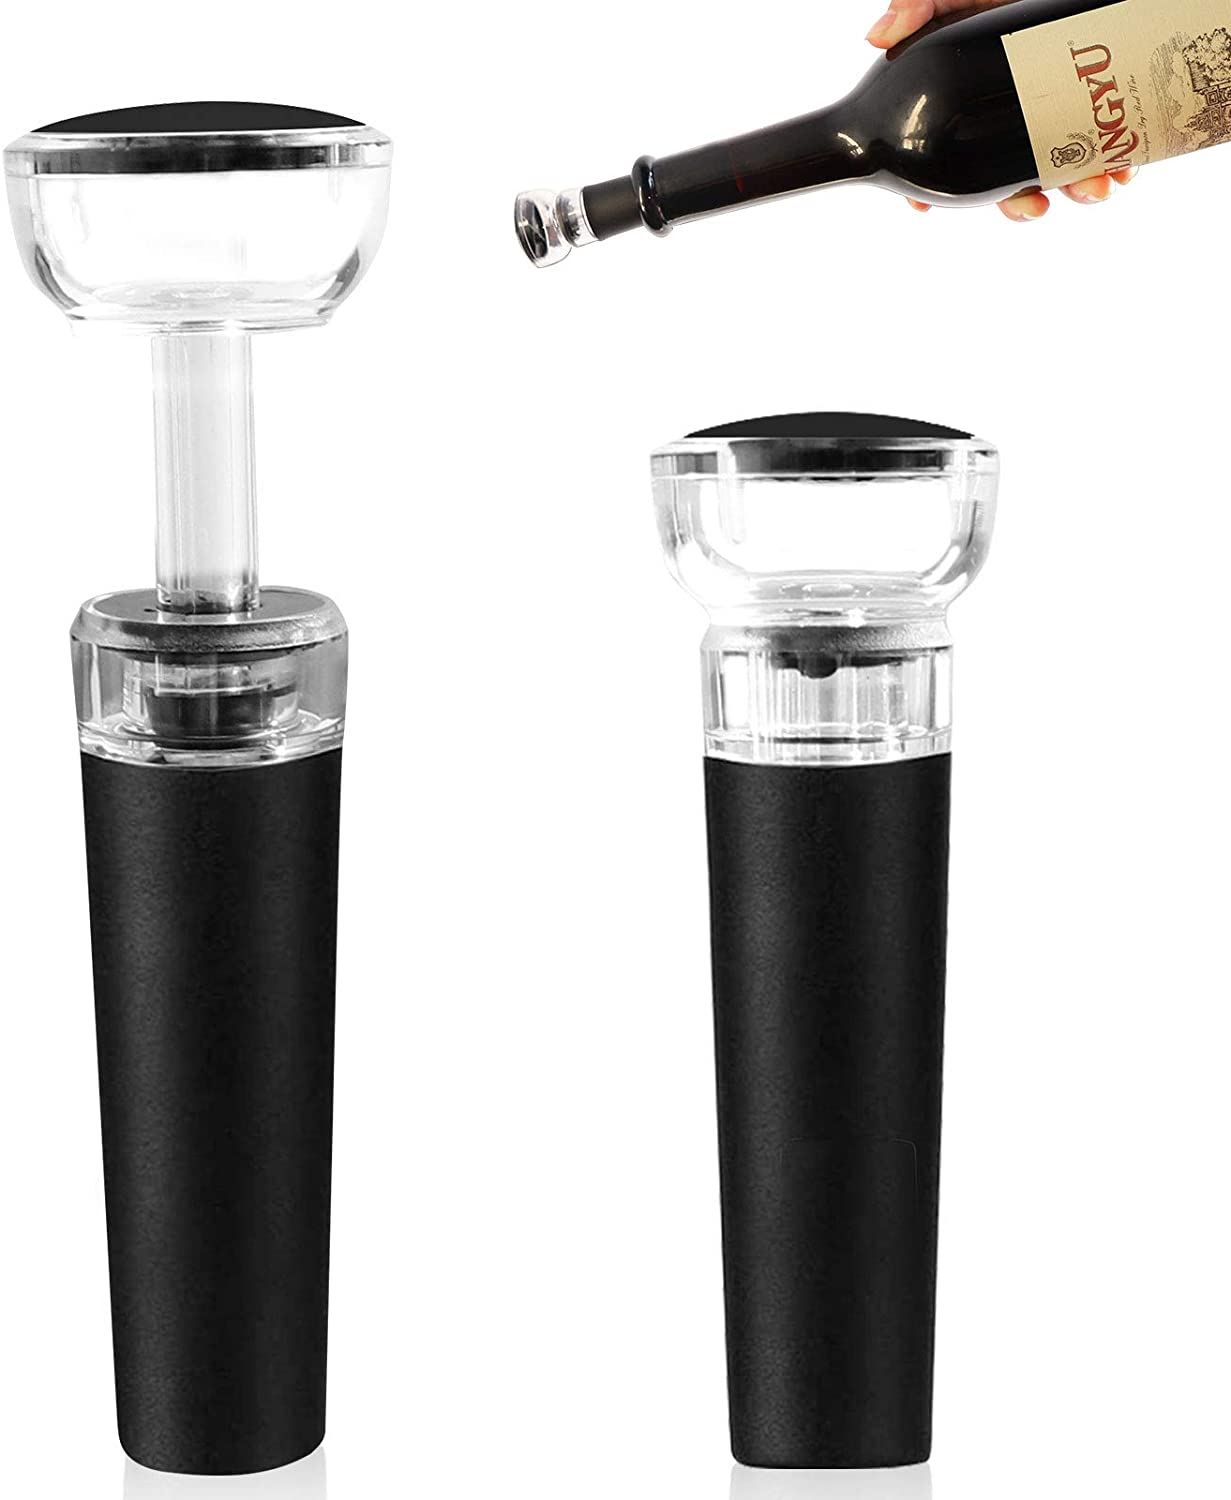 Reusable Wine Stoppers 2 Pcs Letrushare Wine Saver Stopper with Vacuum Pump Food Grade Silicone Sealed Black Leaktight Bottle Outlet Caps for Red Wine Bottle Cork Cap Replacement and Beverage Bottles